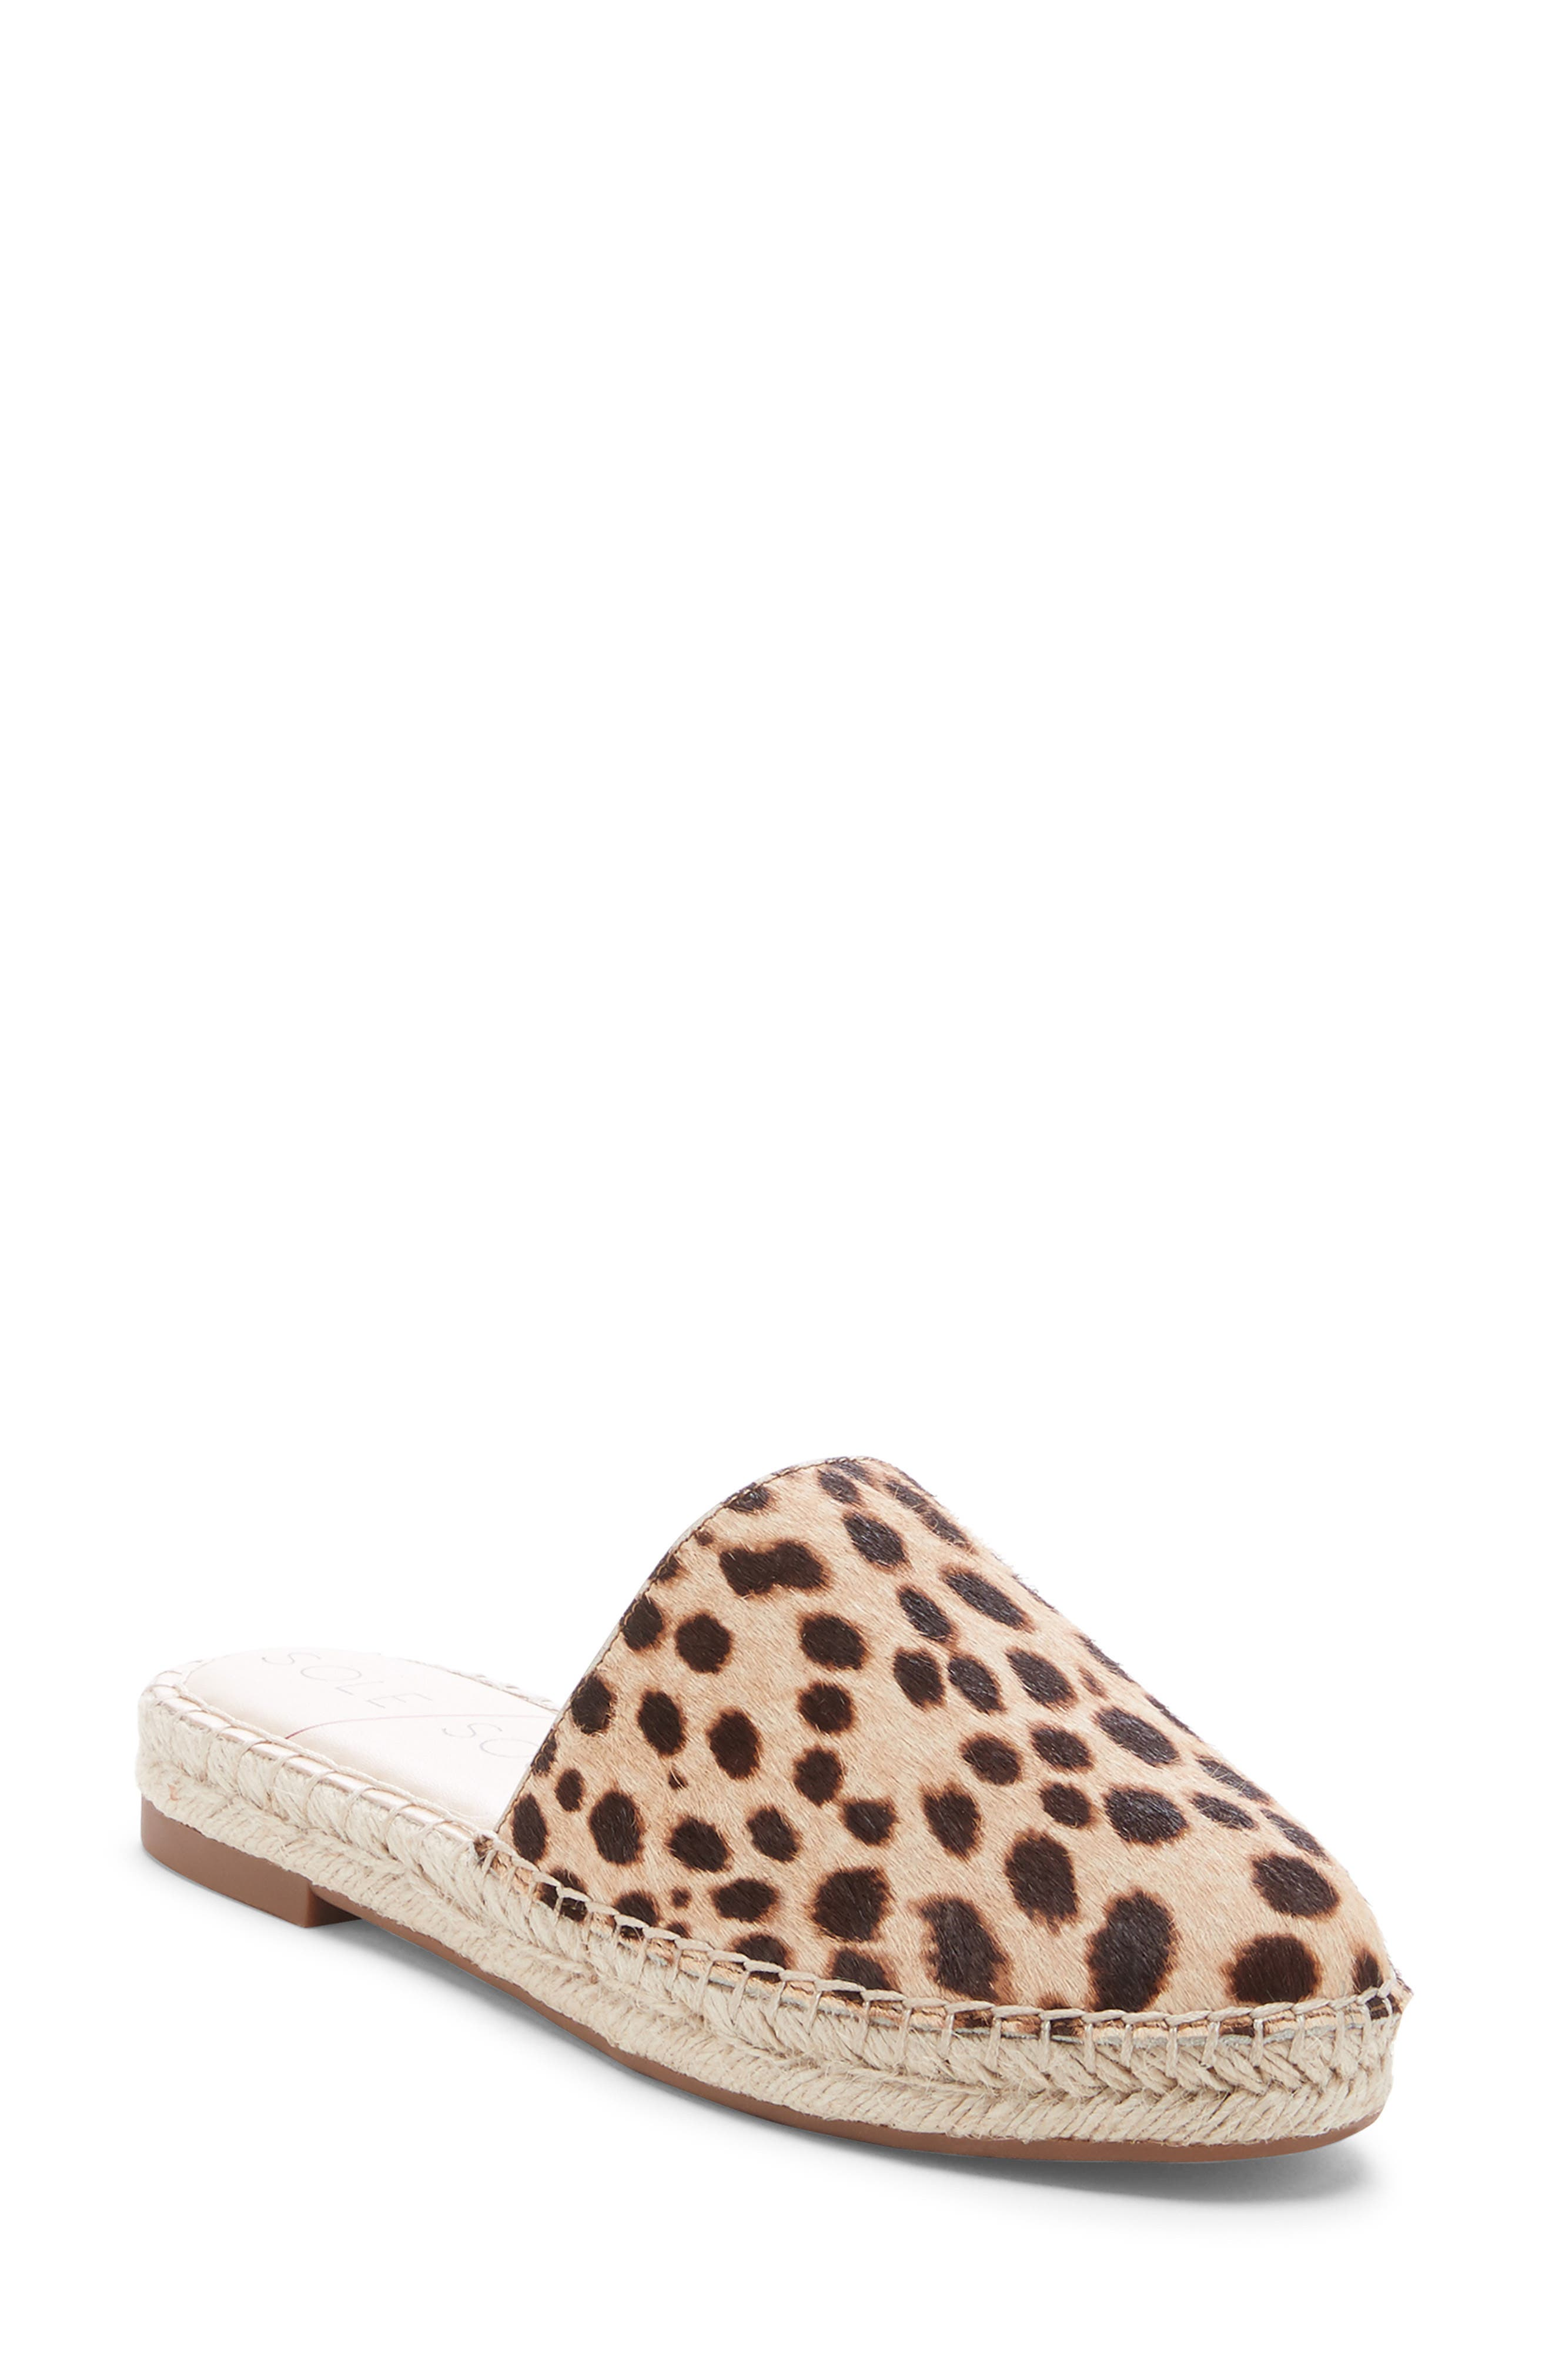 Sole Society Sadelle Espadrille Mule, Brown